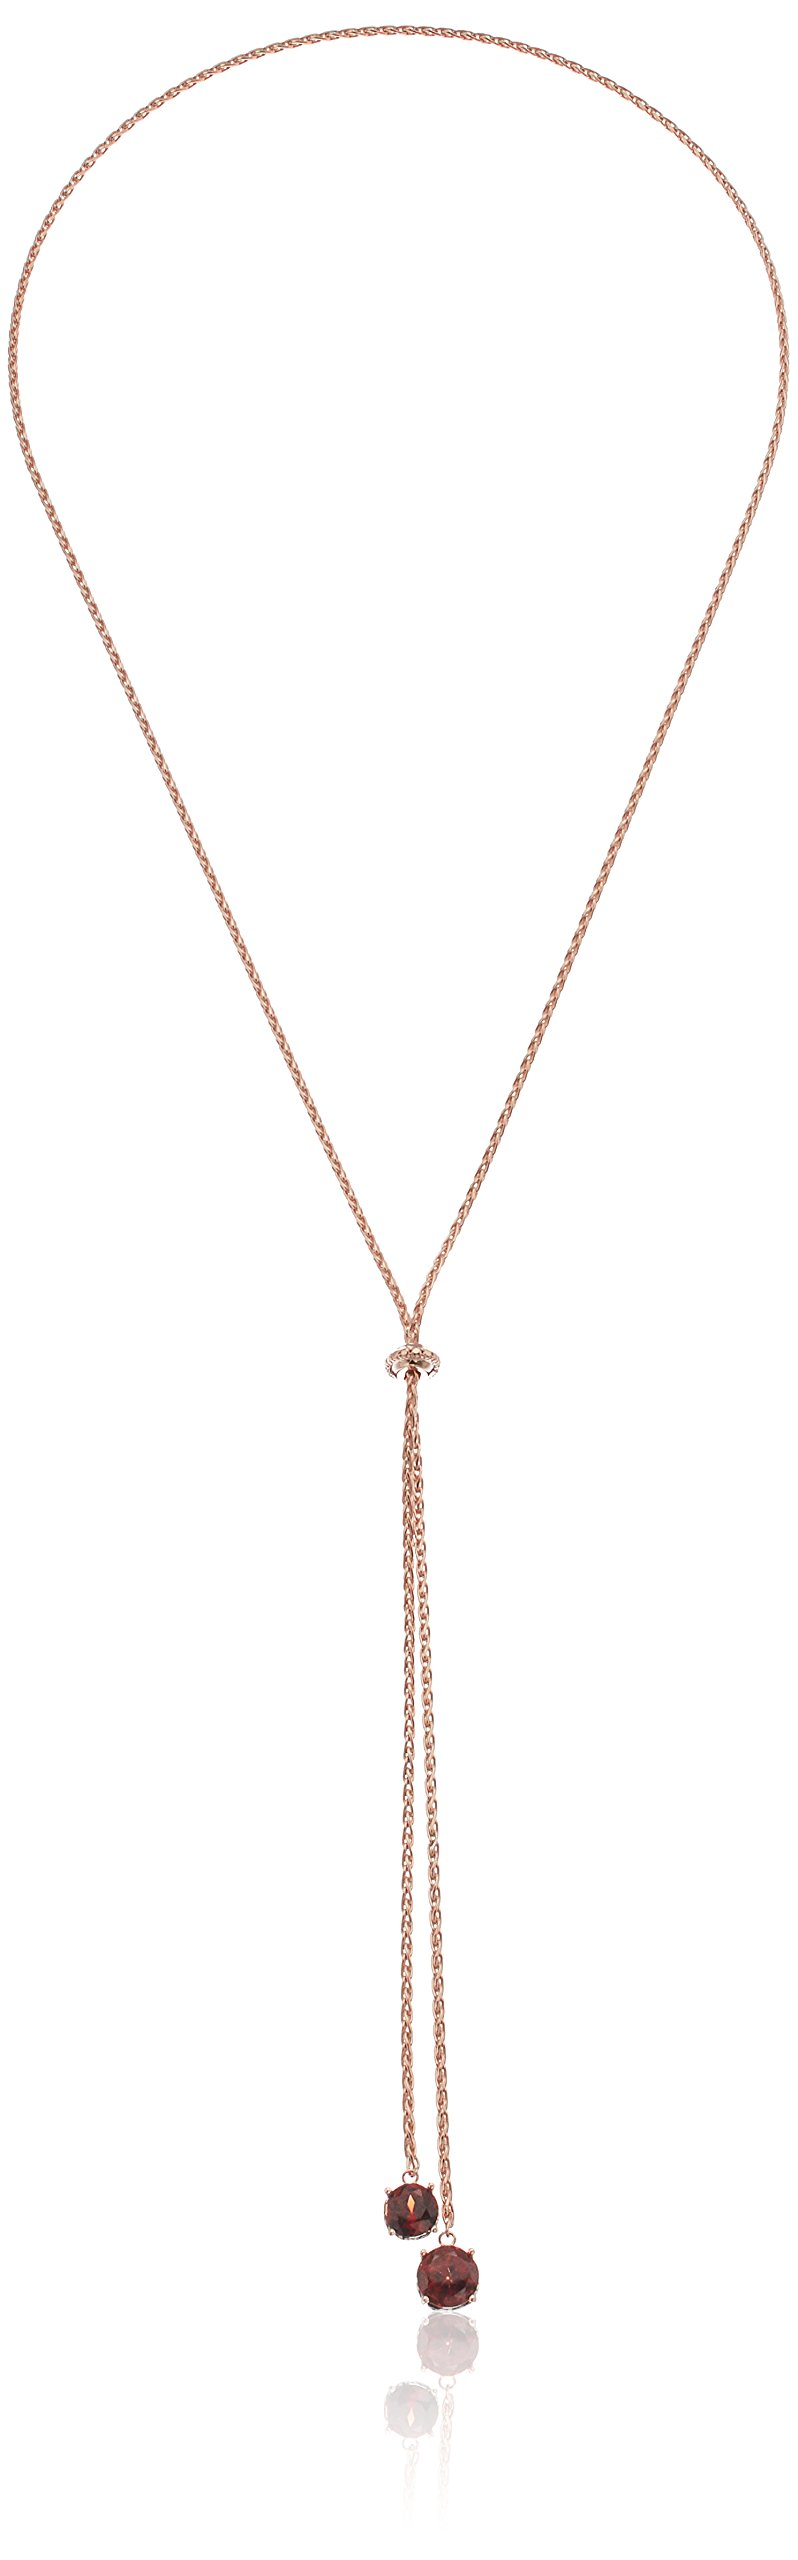 14k Rose Gold Plated Sterling Silver Genuine Garnet and Diamond Accent Lariat Necklace, 26''